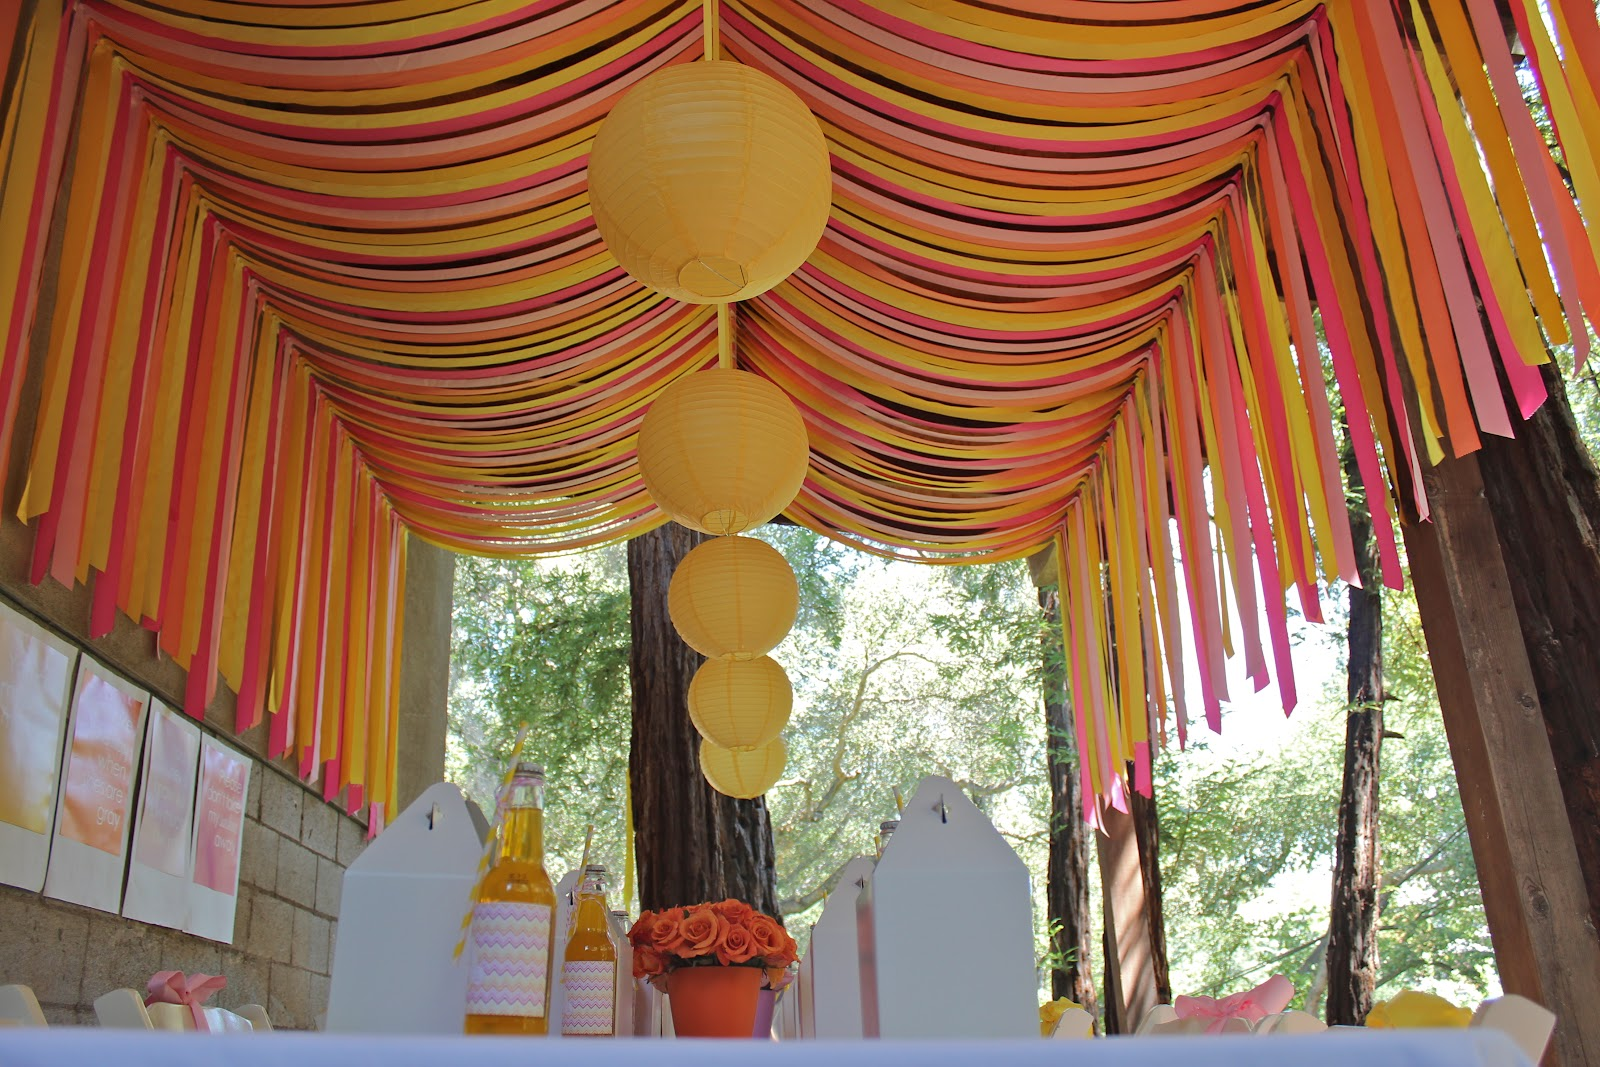 12 Stunning Canopy Designs To Make Your Wedding Decor A